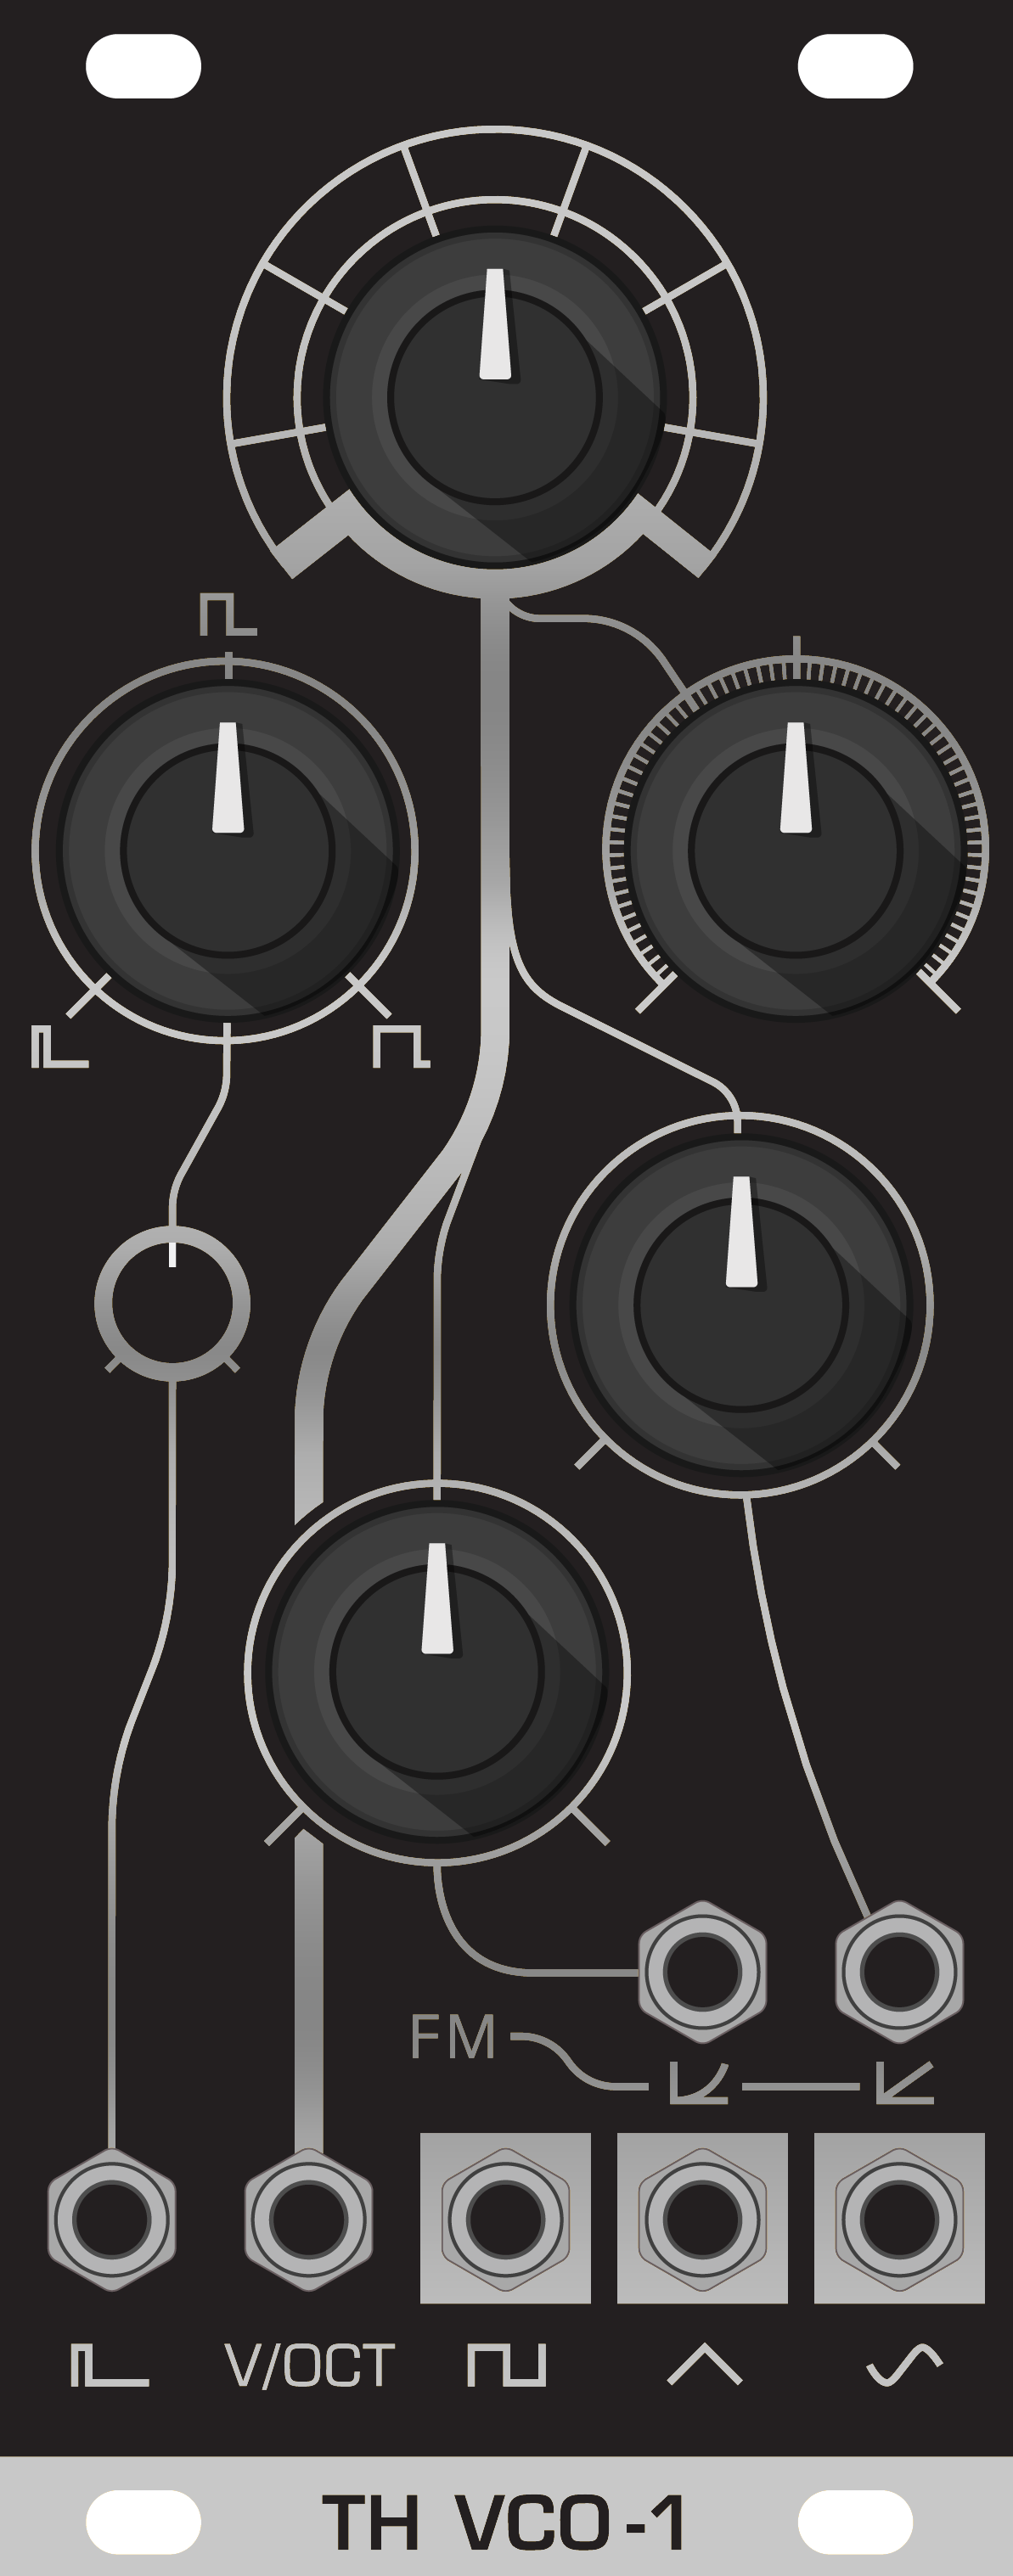 manuals/VCO1_Board.png